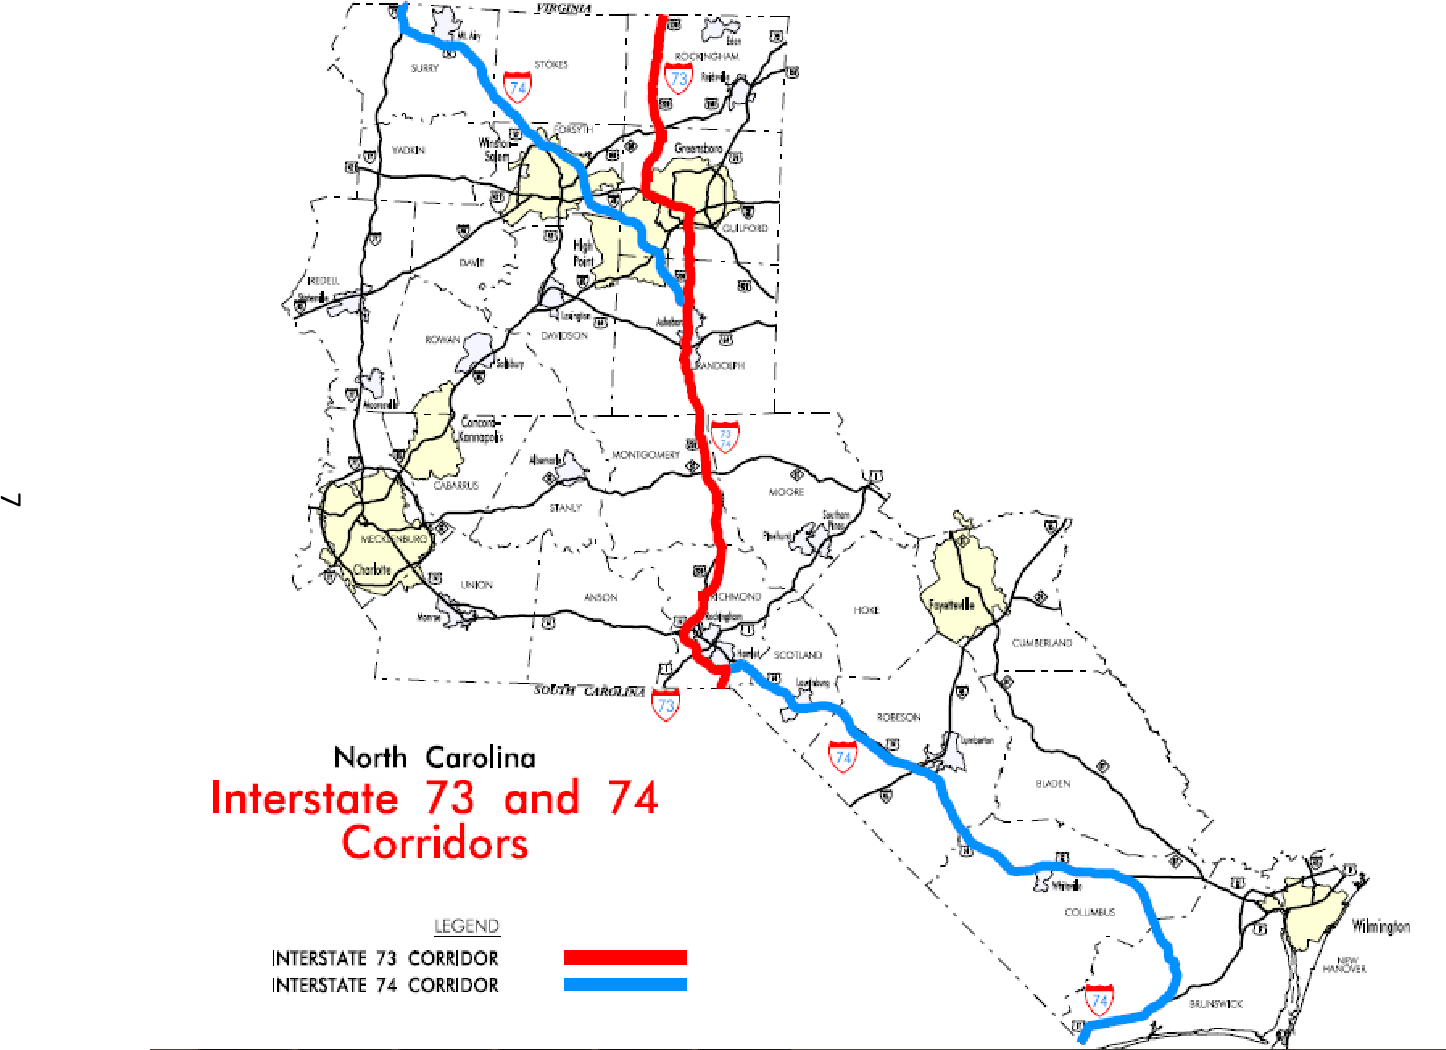 PDF] A model for predicting highway noise using a Geographic ... I Interstate Map on interstate 275 map, interstate 71 ohio map, interstate 64 virginia map, interstate 280 map, interstate 45 map, interstate 40 texas map, interstate 41 map, interstate 89 map, interstate 87 map, interstate map train, interstate 295 map washington dc, interstate 57 map, interstate 285 map, interstate 35 map, interstate 91 map, interstate 69 map,